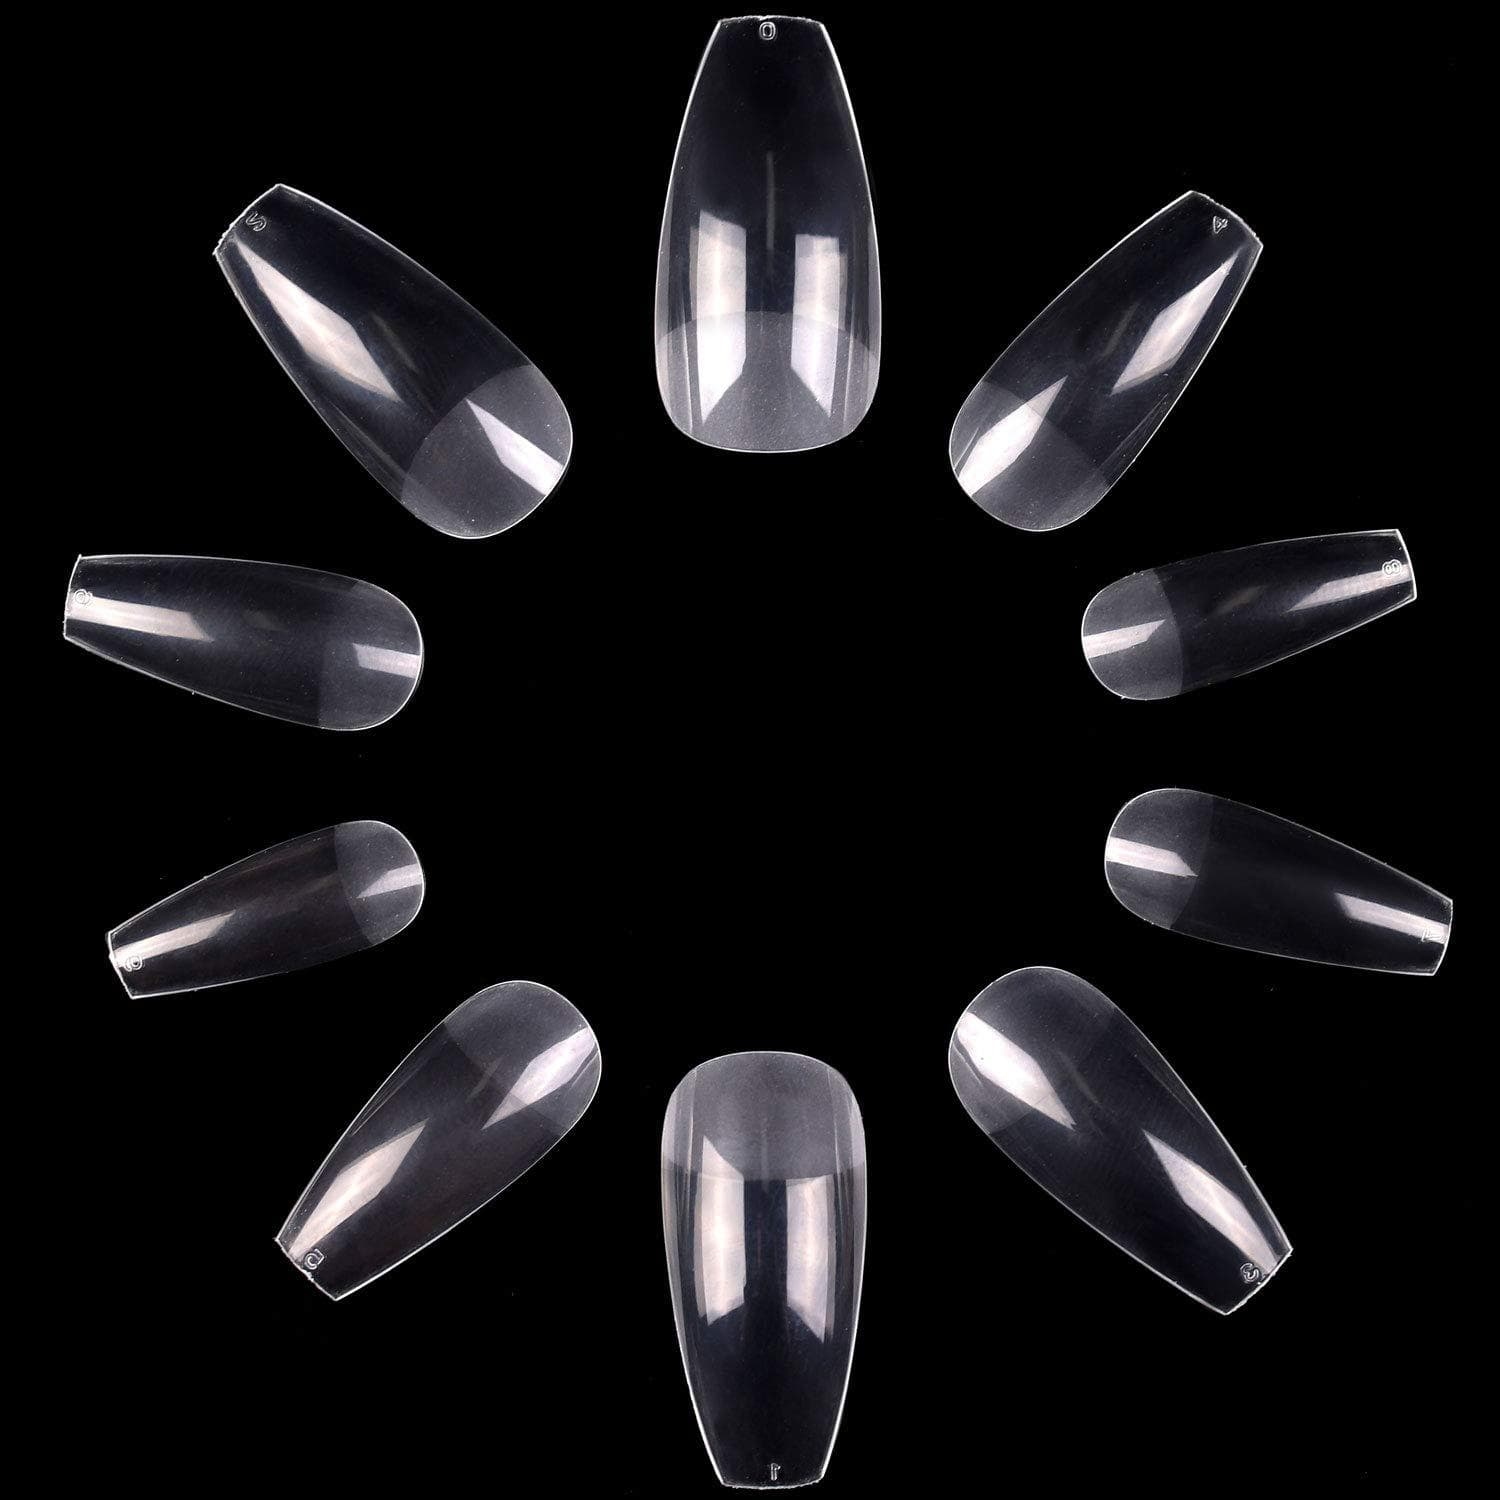 Pack of 500 Pieces Coffin Nail Tips - Makartt